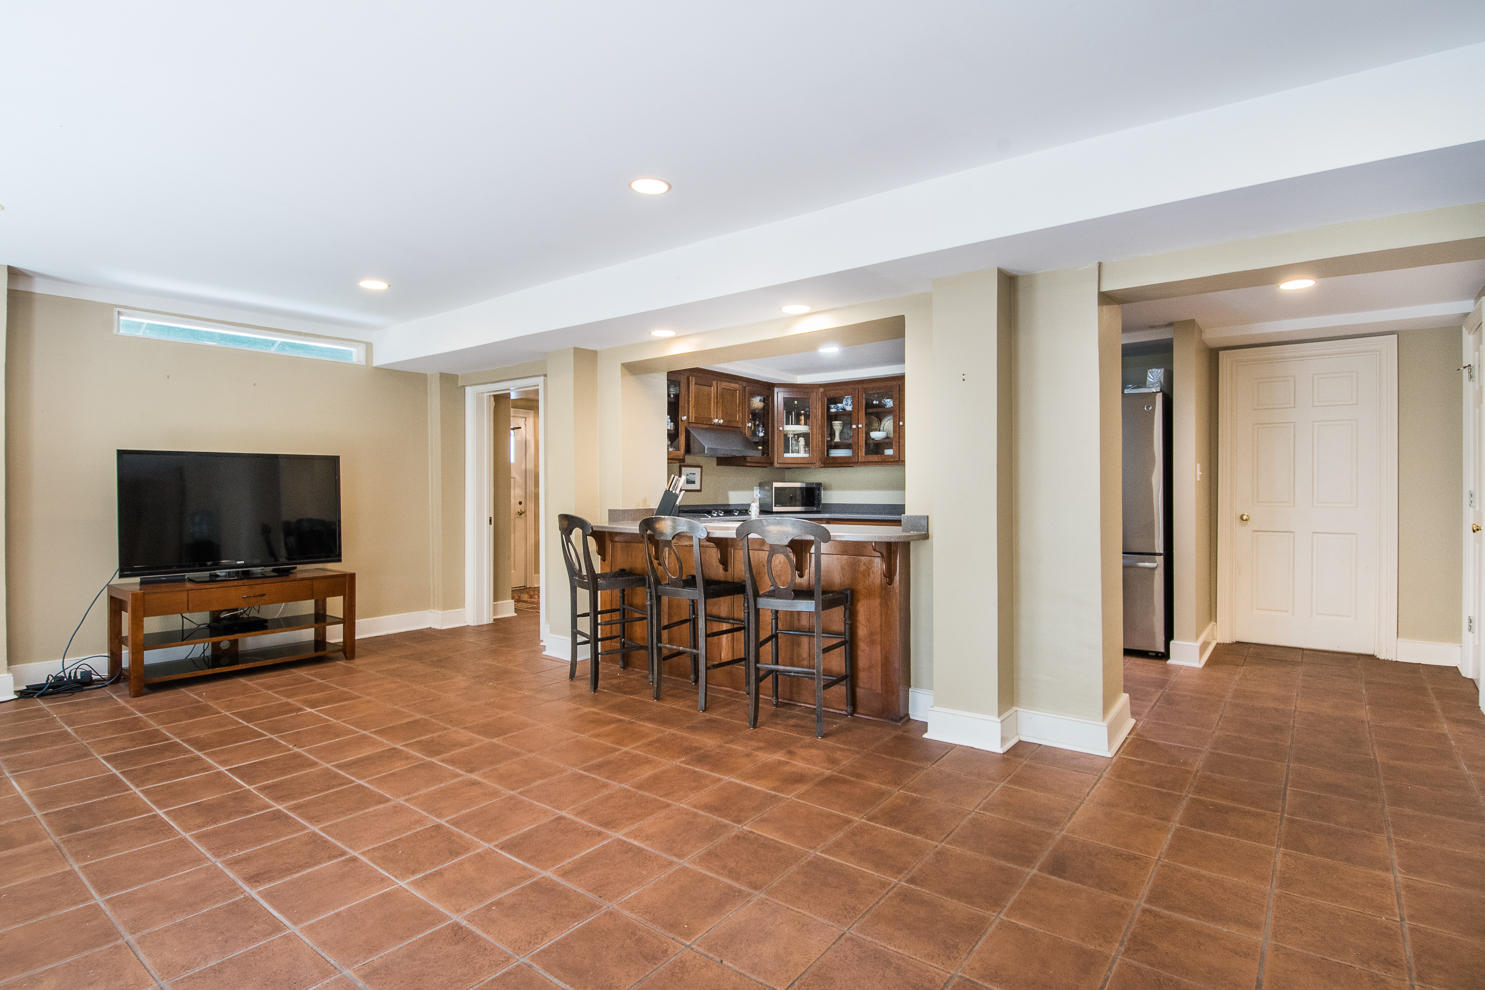 South of Broad Homes For Sale - 1 Prices, Charleston, SC - 48